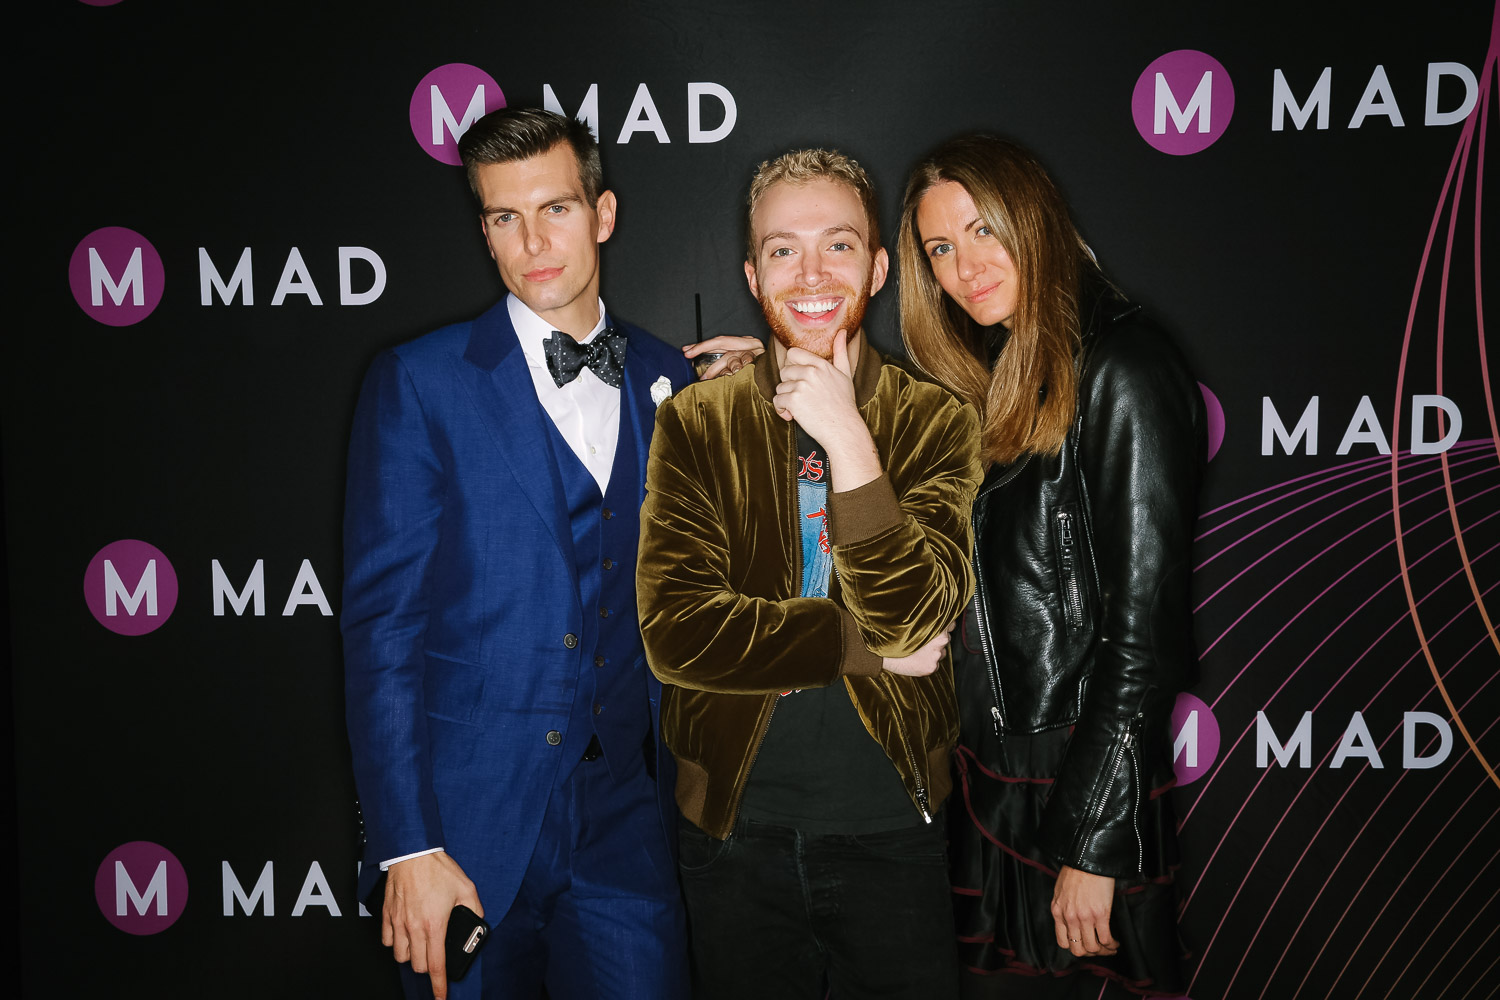 MAD NYC Event 2017 - GoldBar